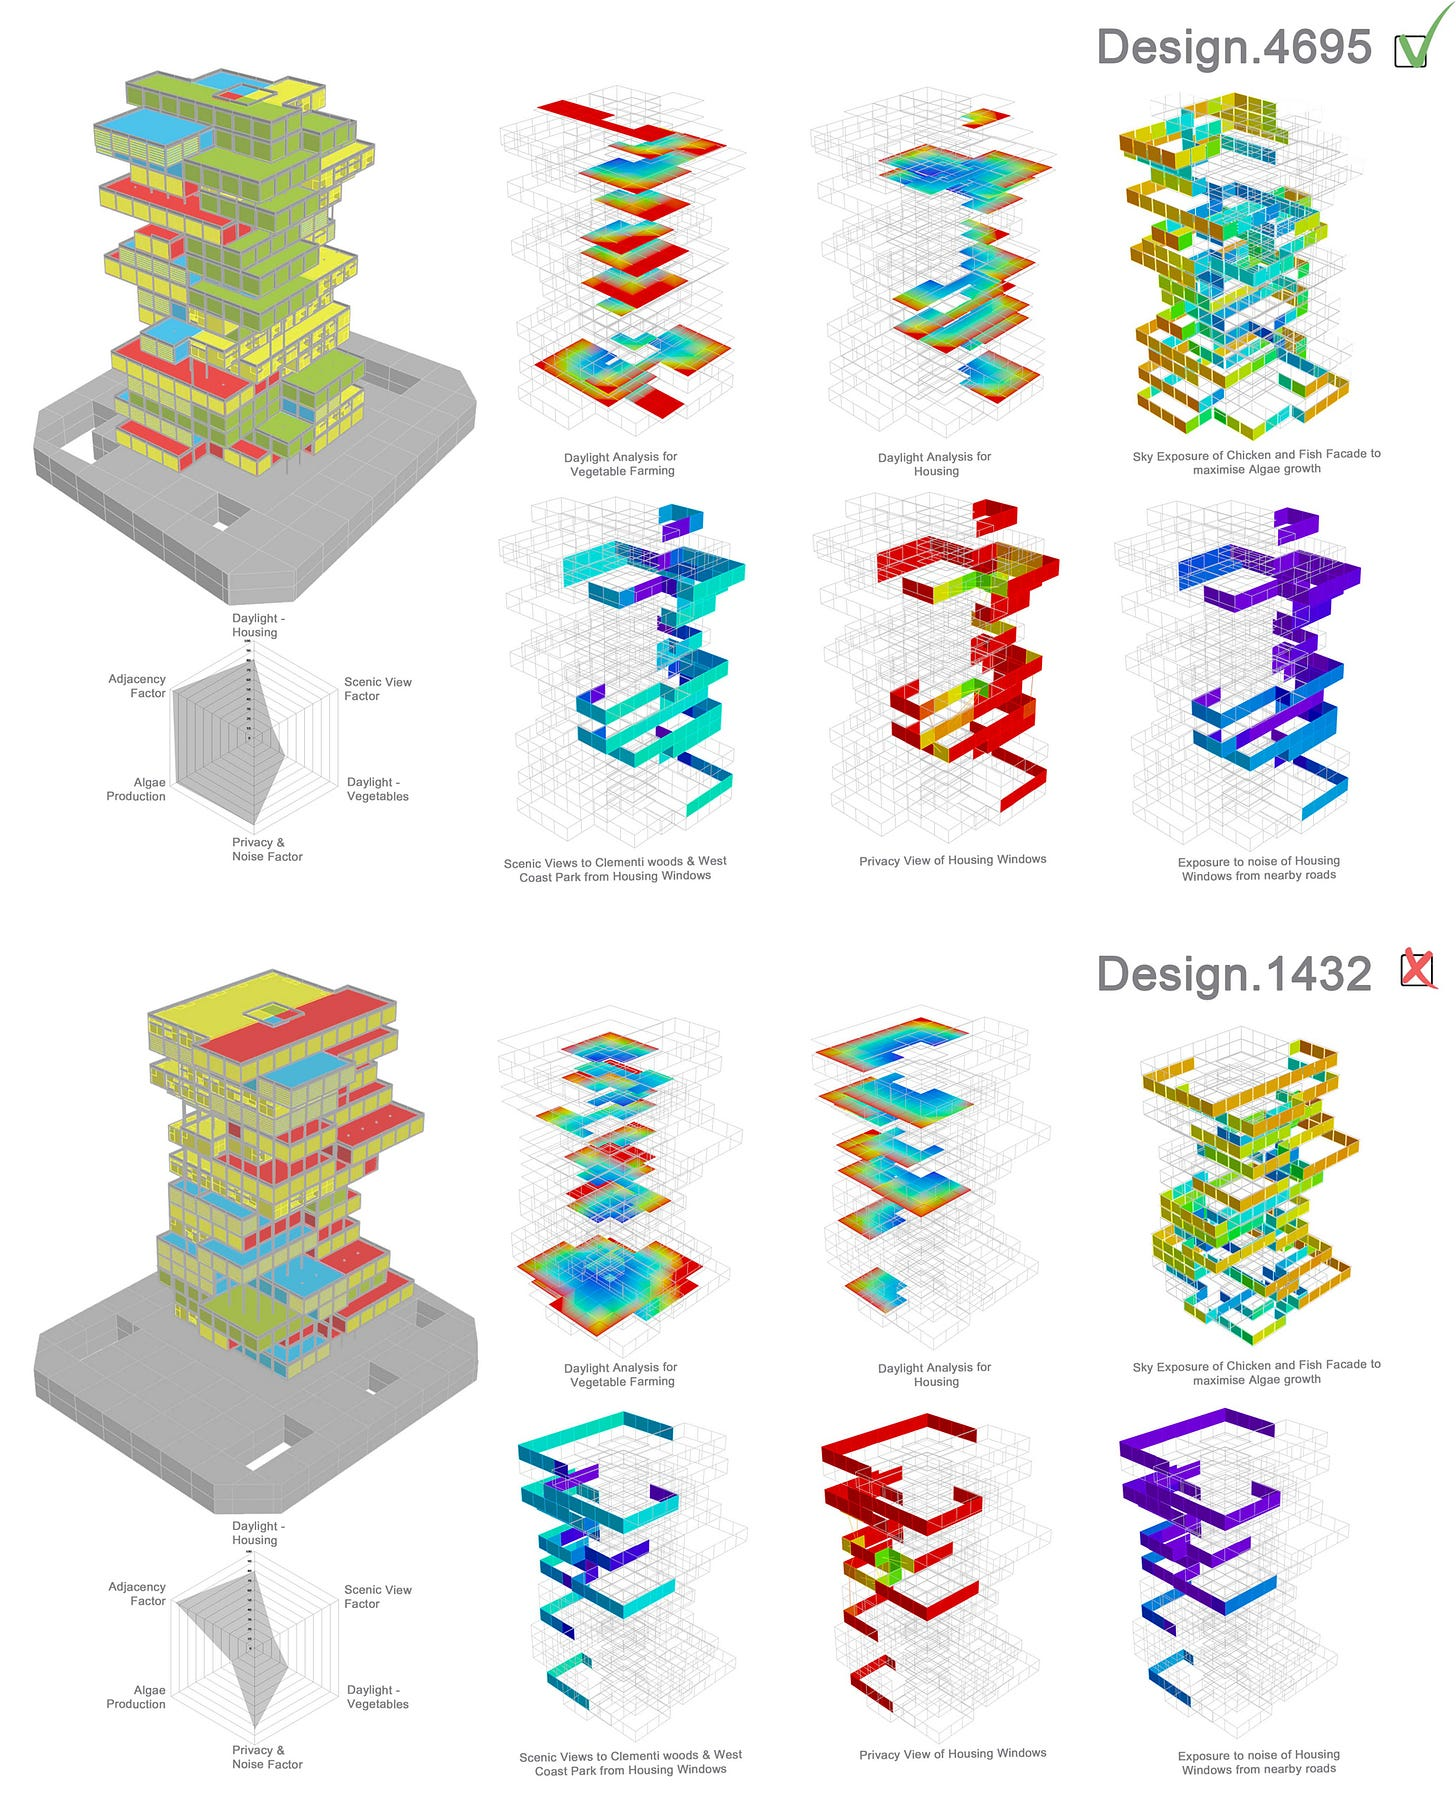 version 4 - designs variants from the population